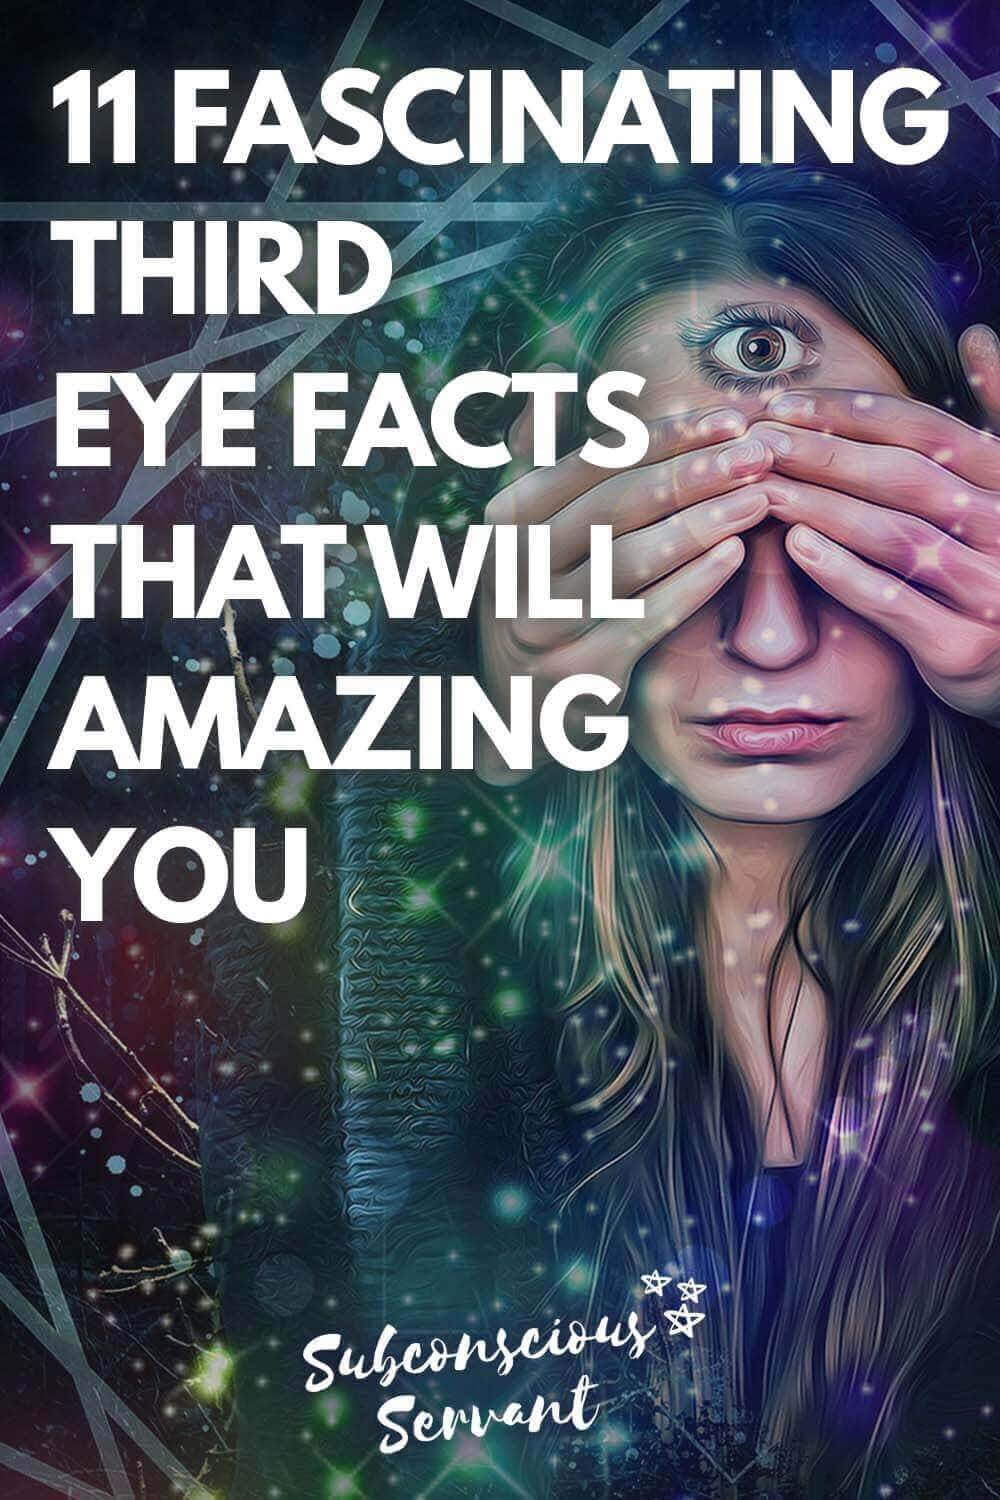 11 Fascinating Third Eye Facts That Will AMAZE You